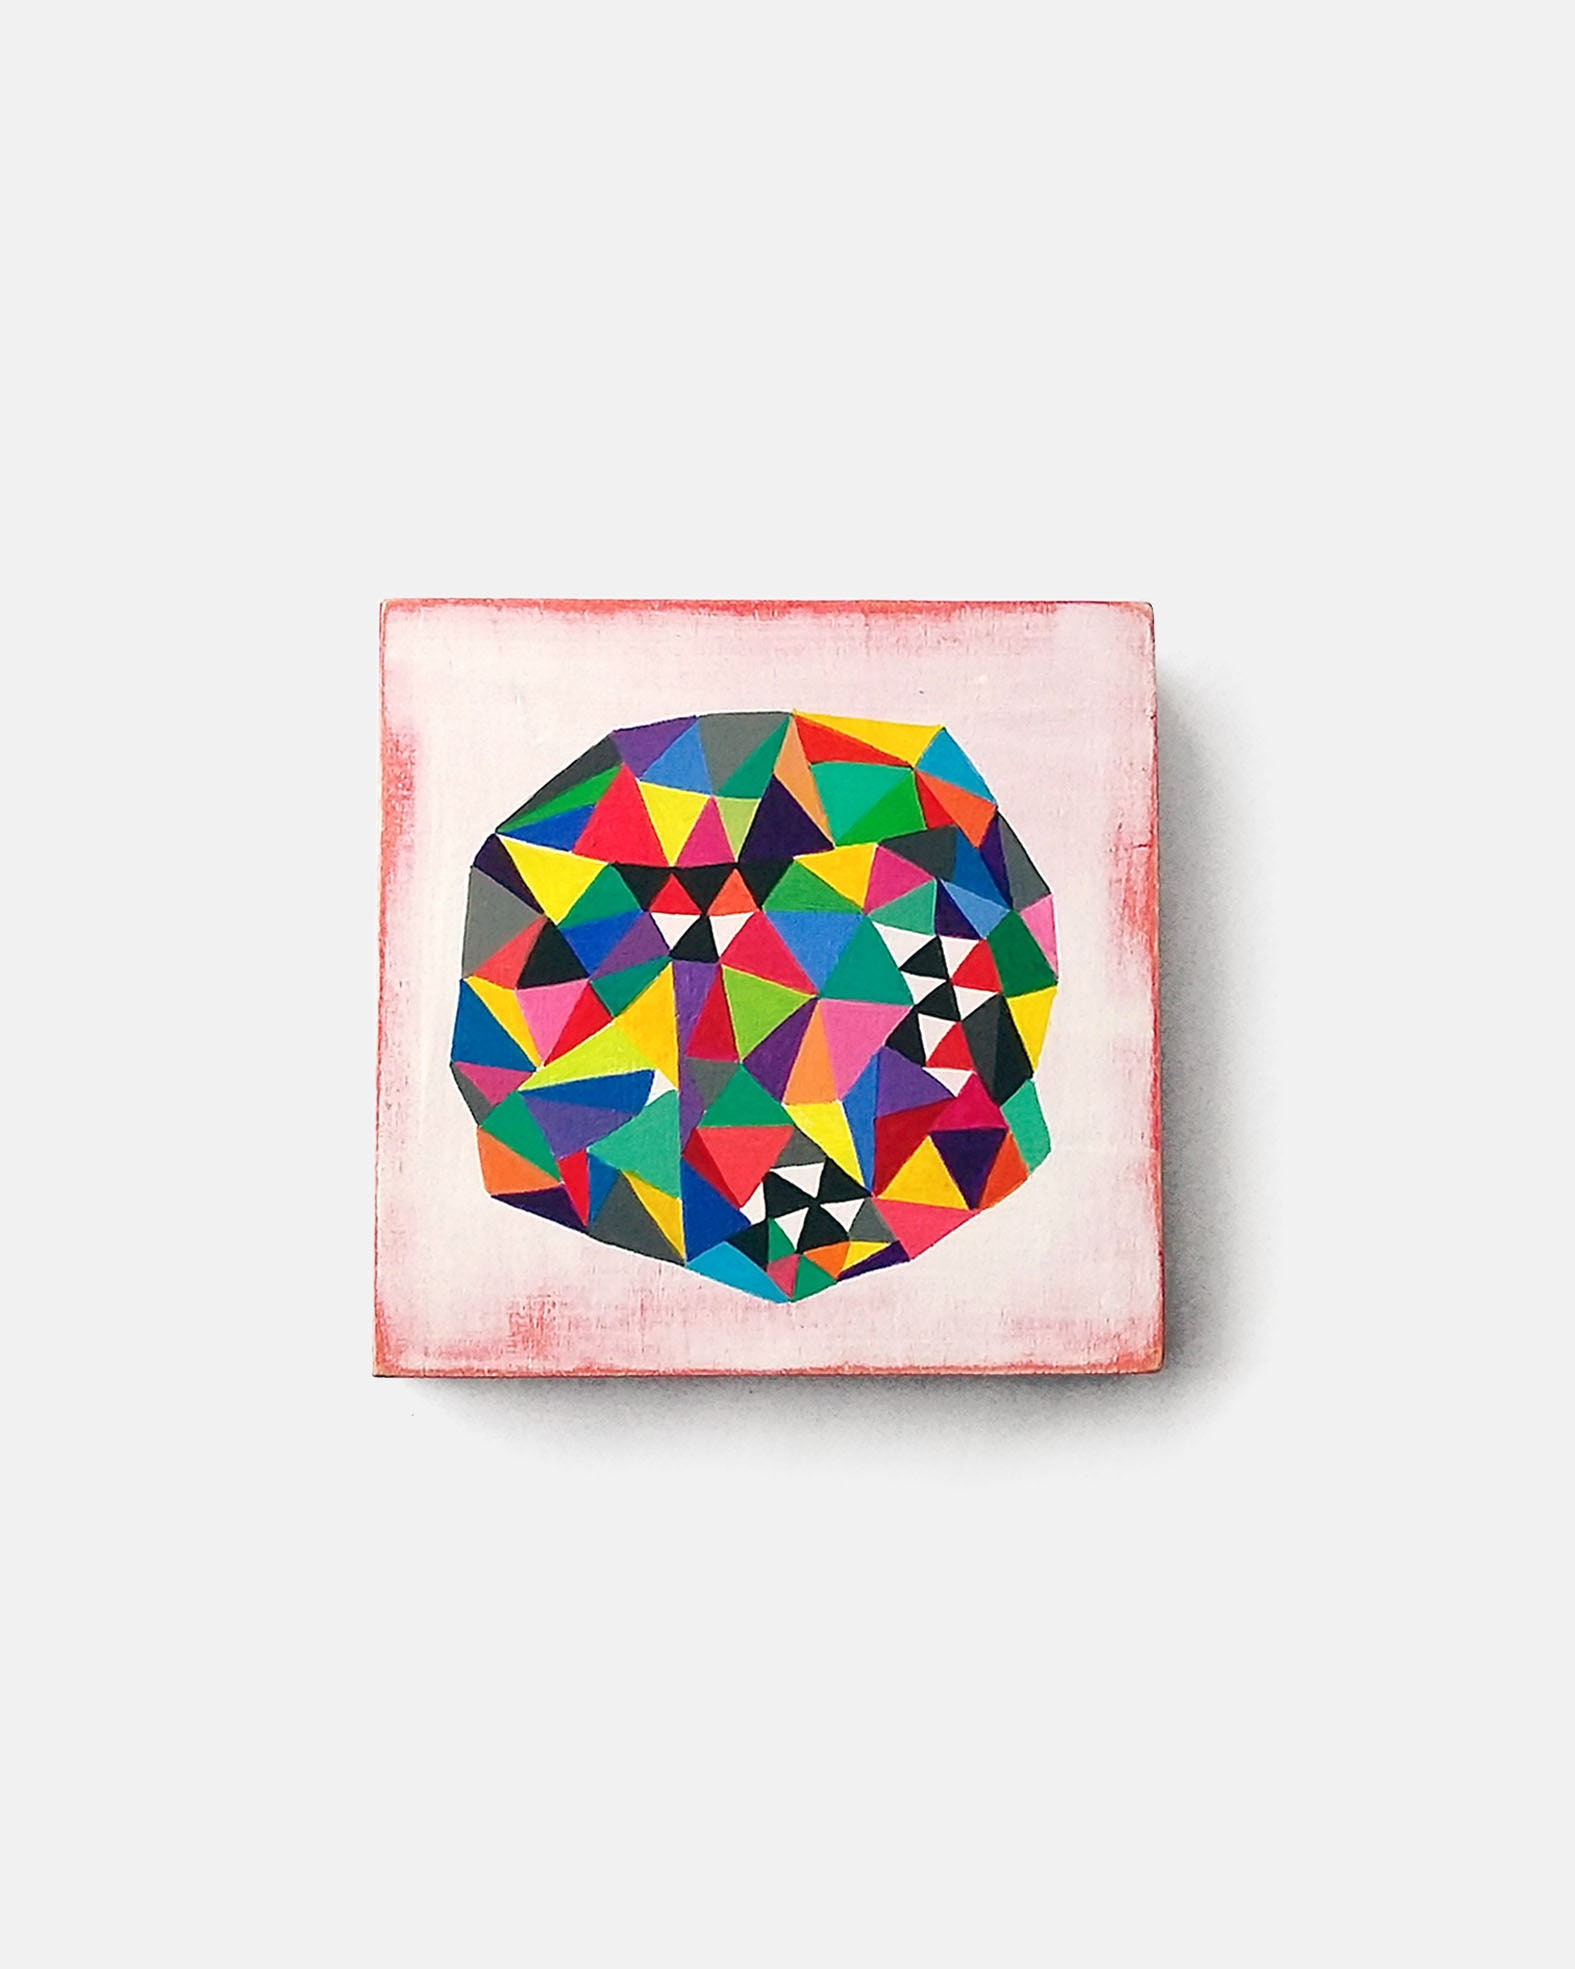 Microbe_001, colourful geometric abstract painting,  - product images  of